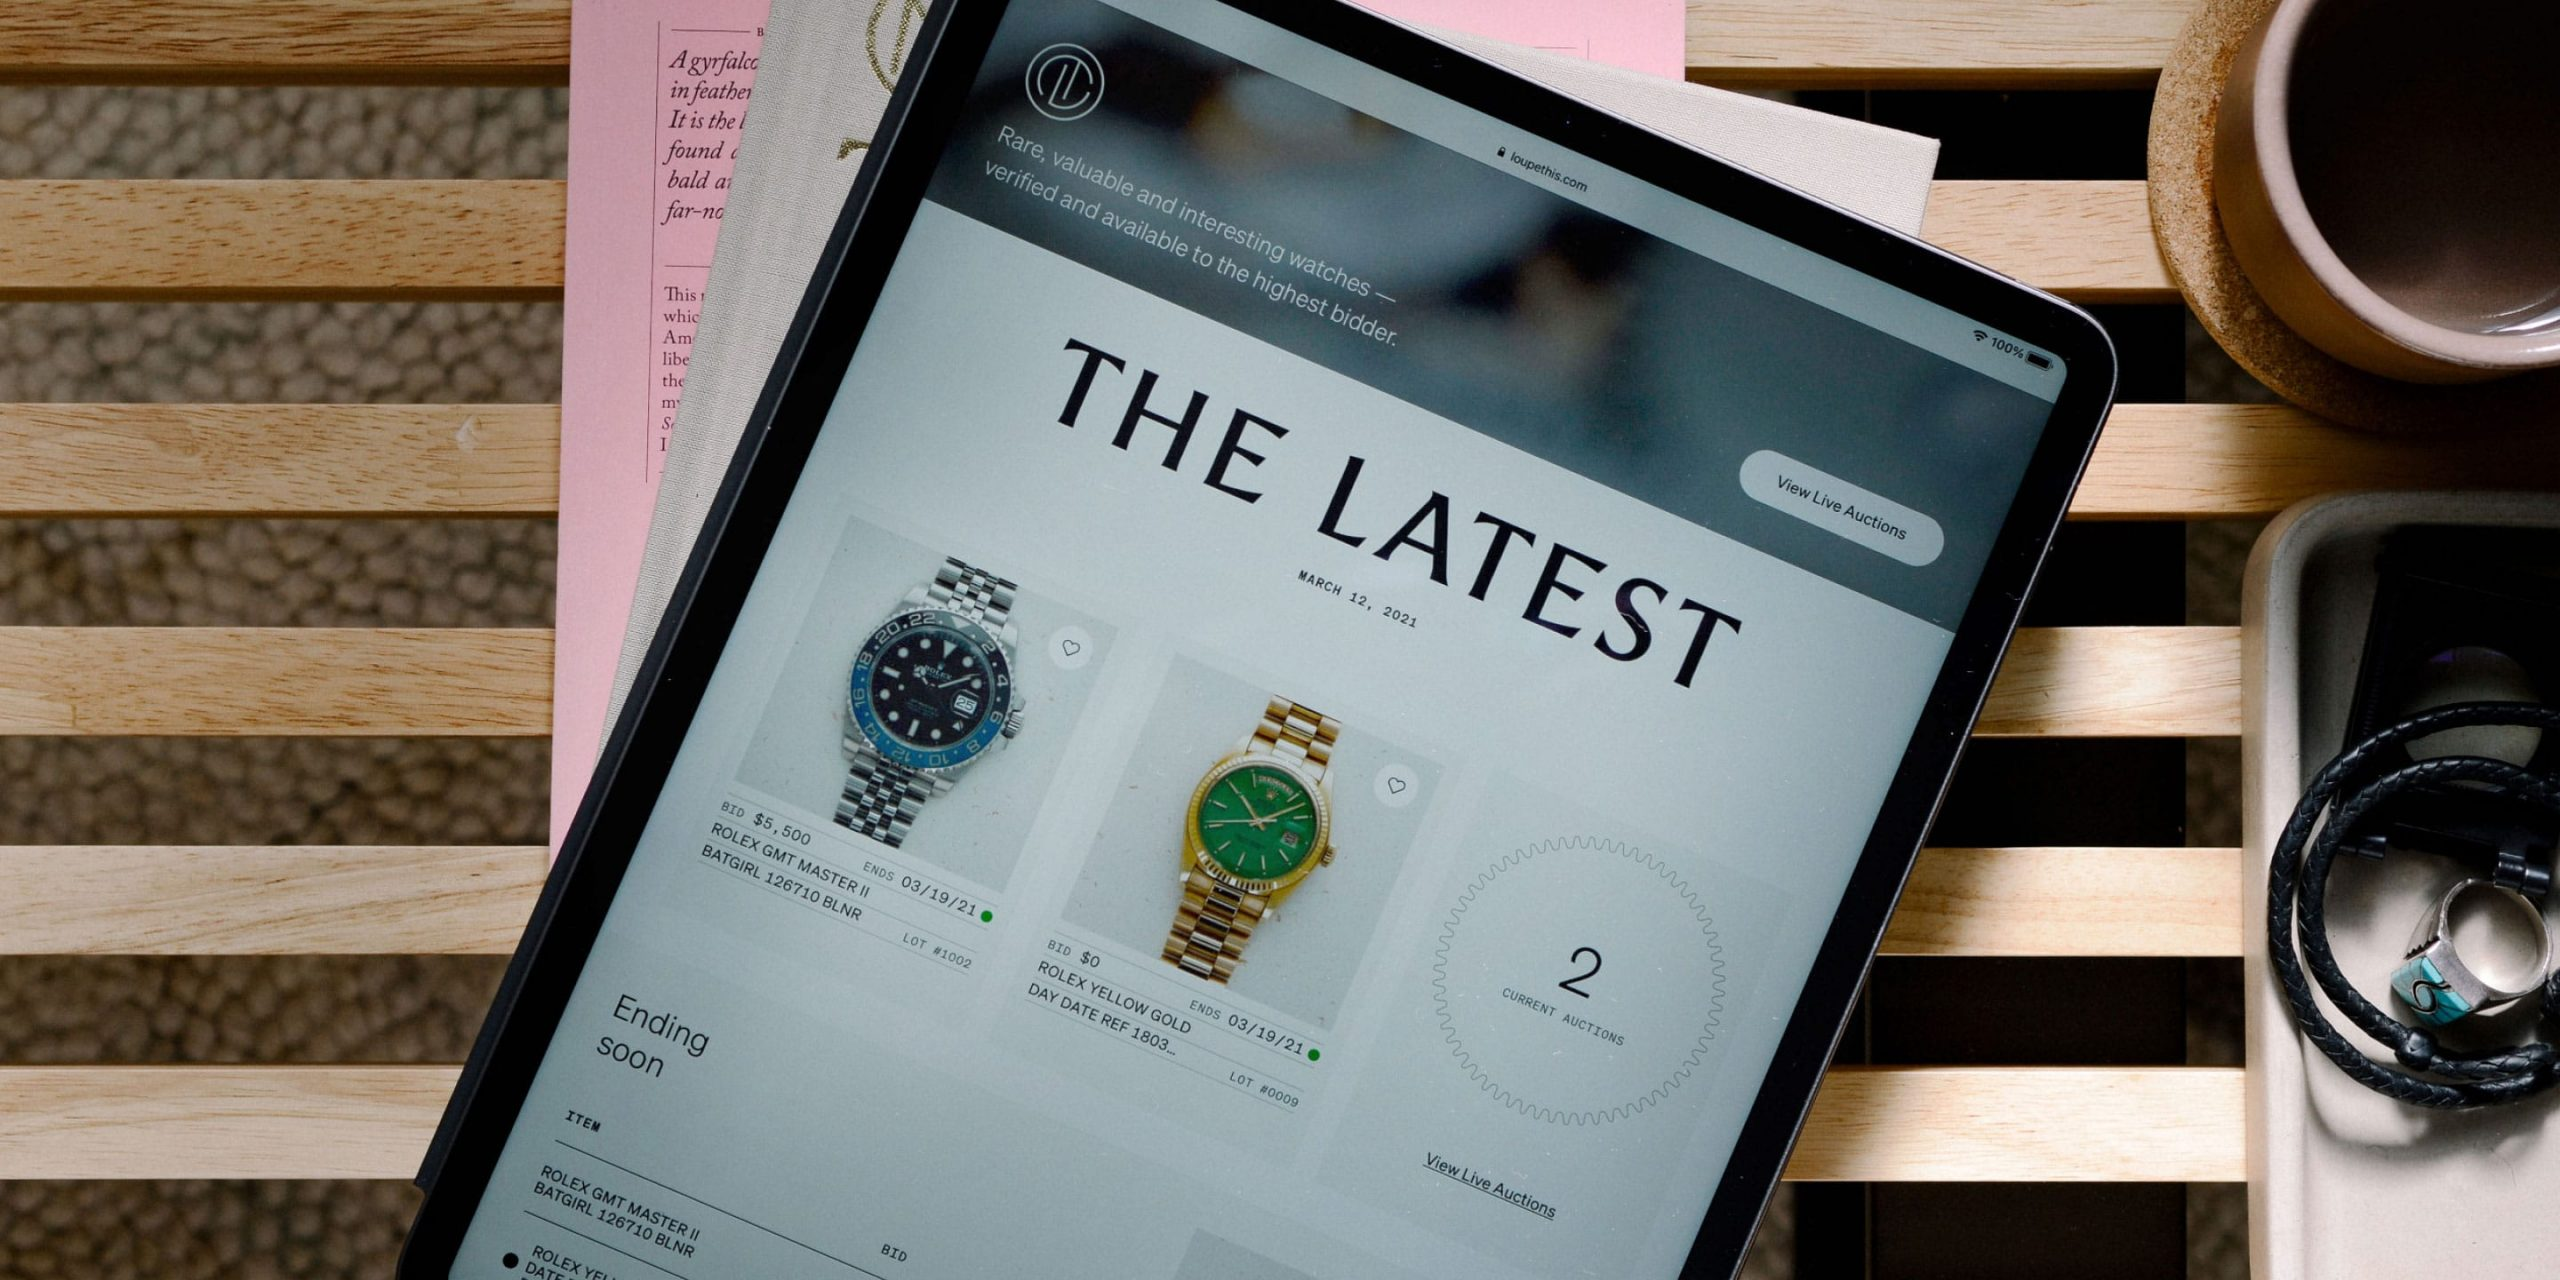 Introducing Loupe This, a highly evolved online watch auction platform for buyers and sellers